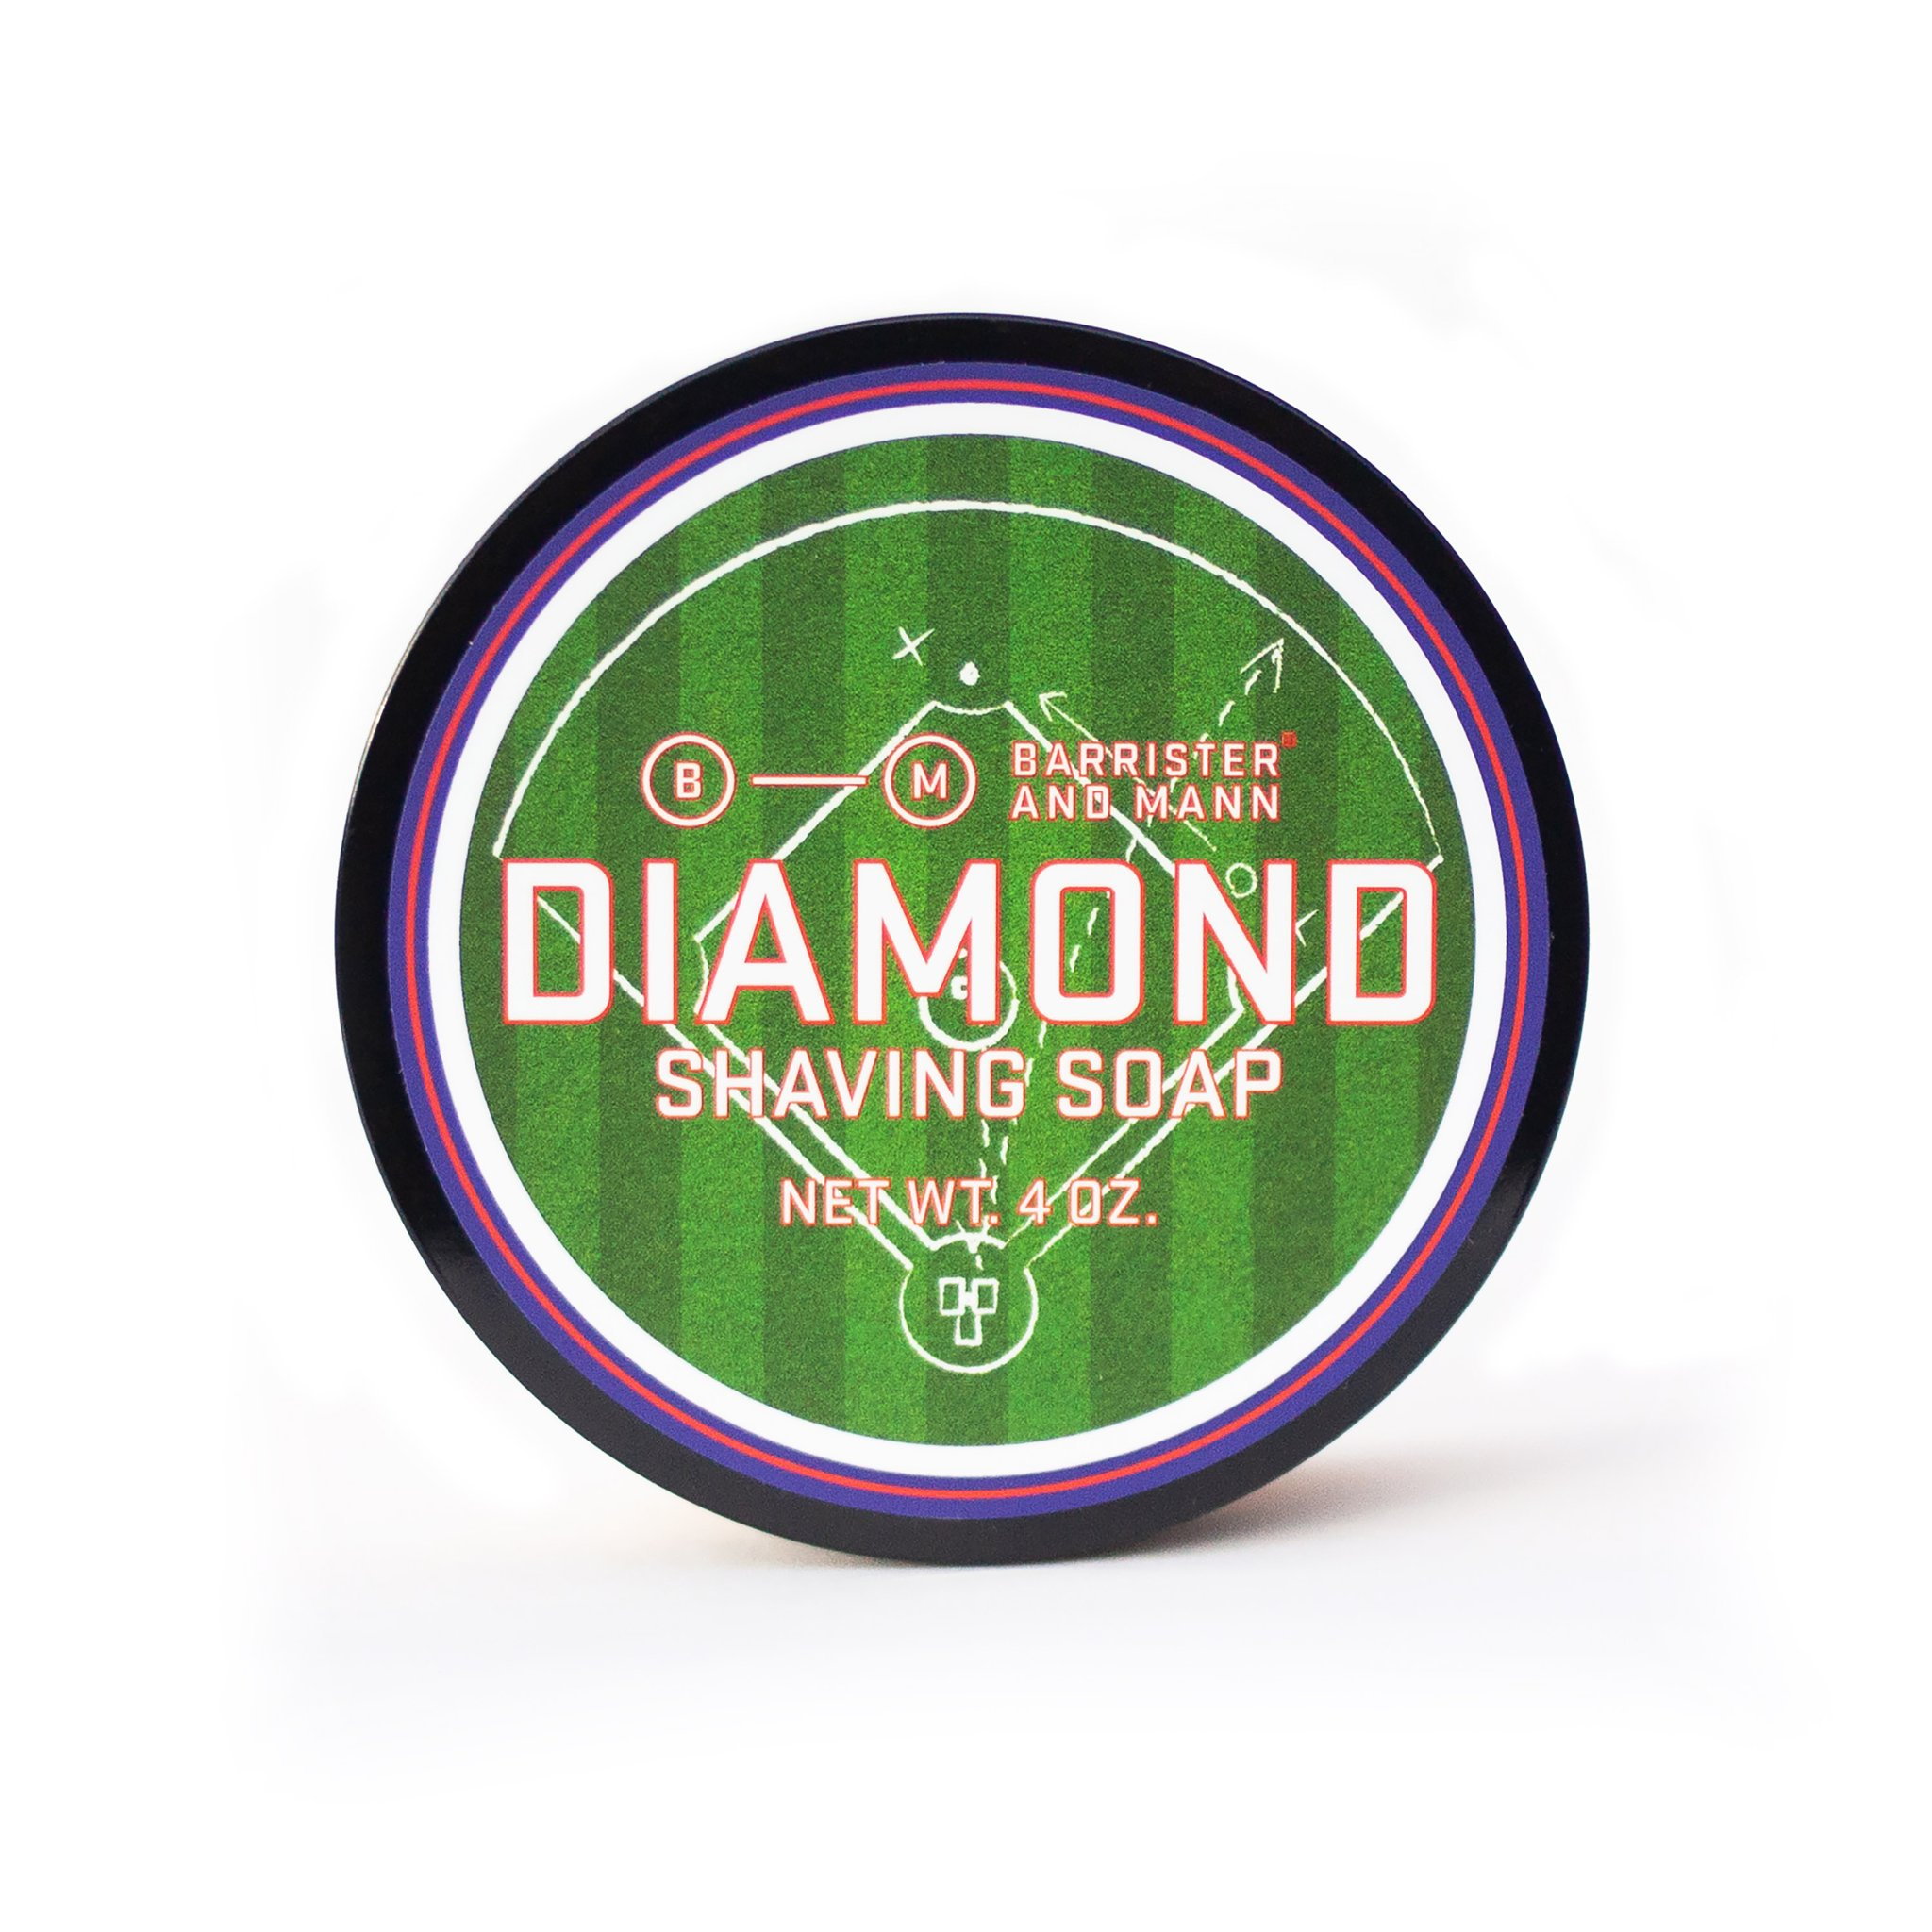 Barrister and Mann - Barrister and Mann - Diamond - Soap image